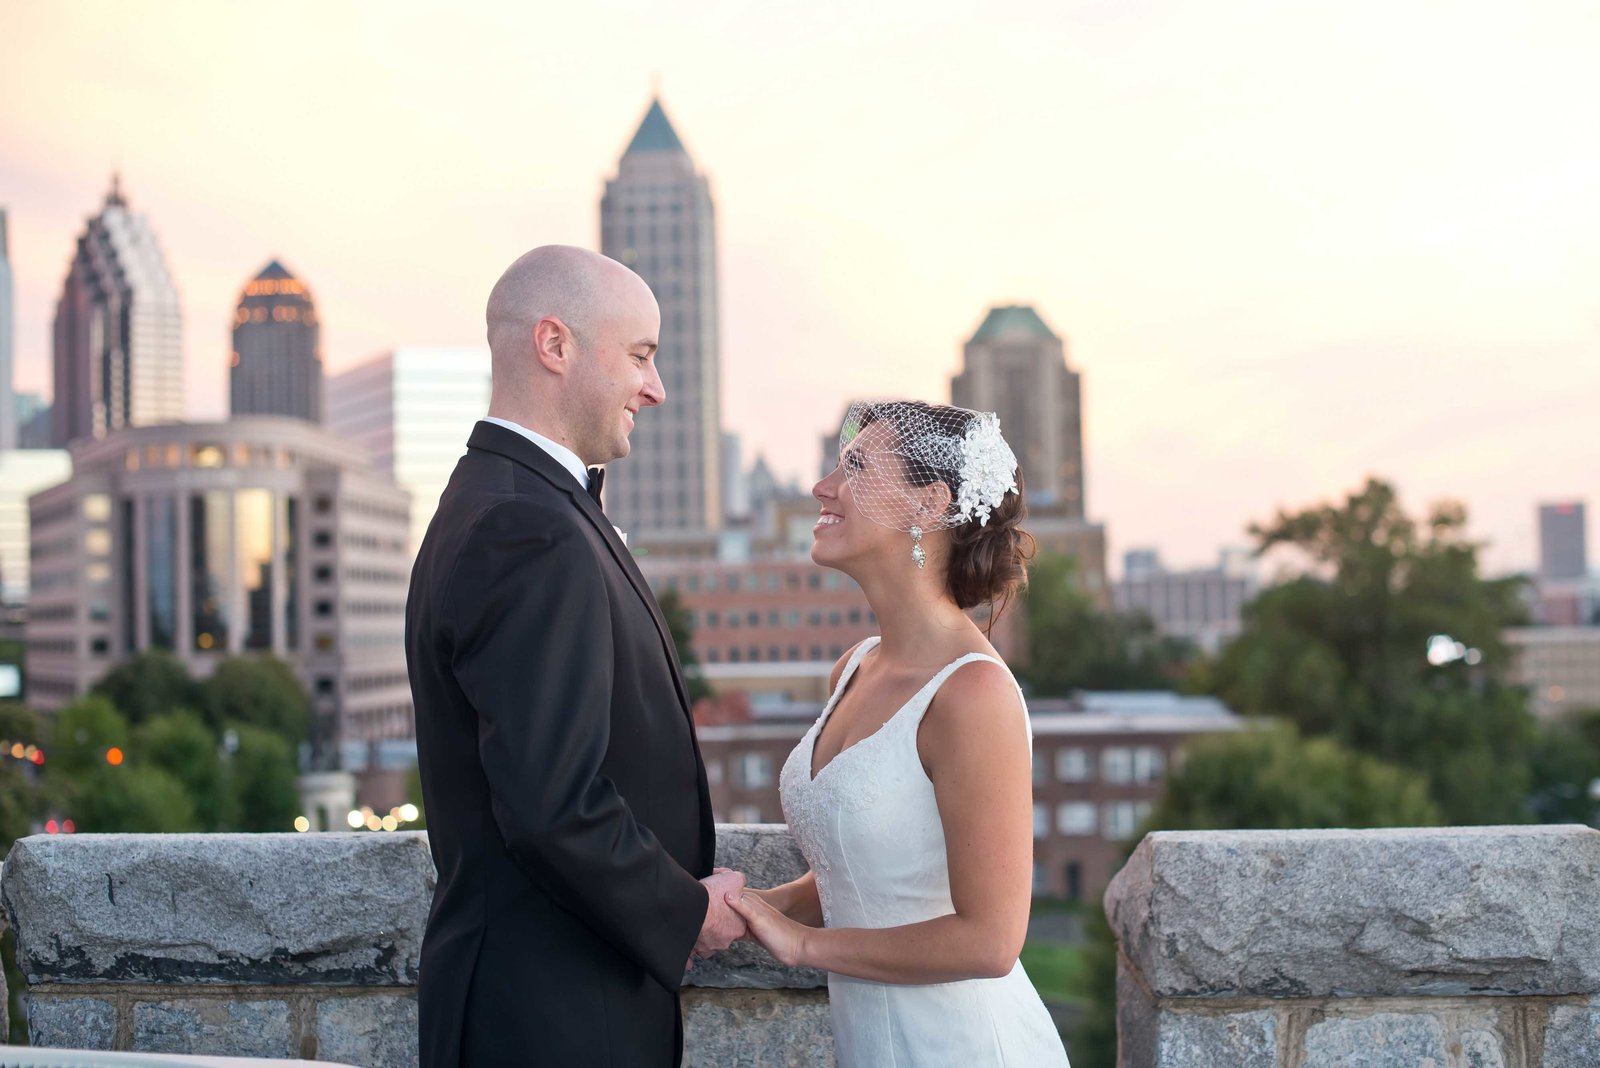 weddings atlanta photographer-21